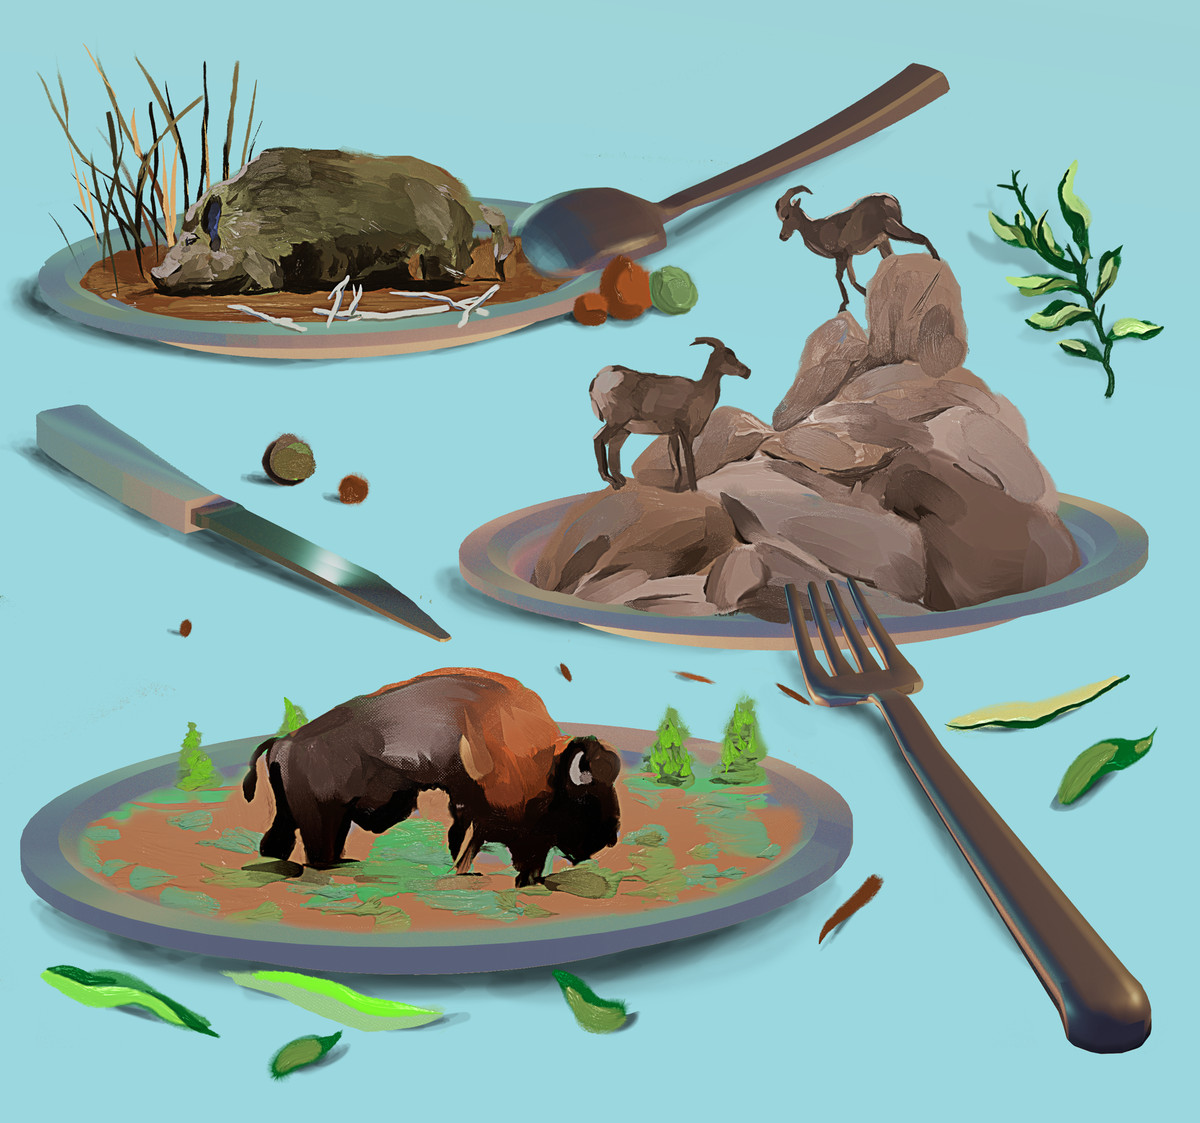 Three plates each show a different scene: a boar lying down; two deer on rocks; a bison grazing.